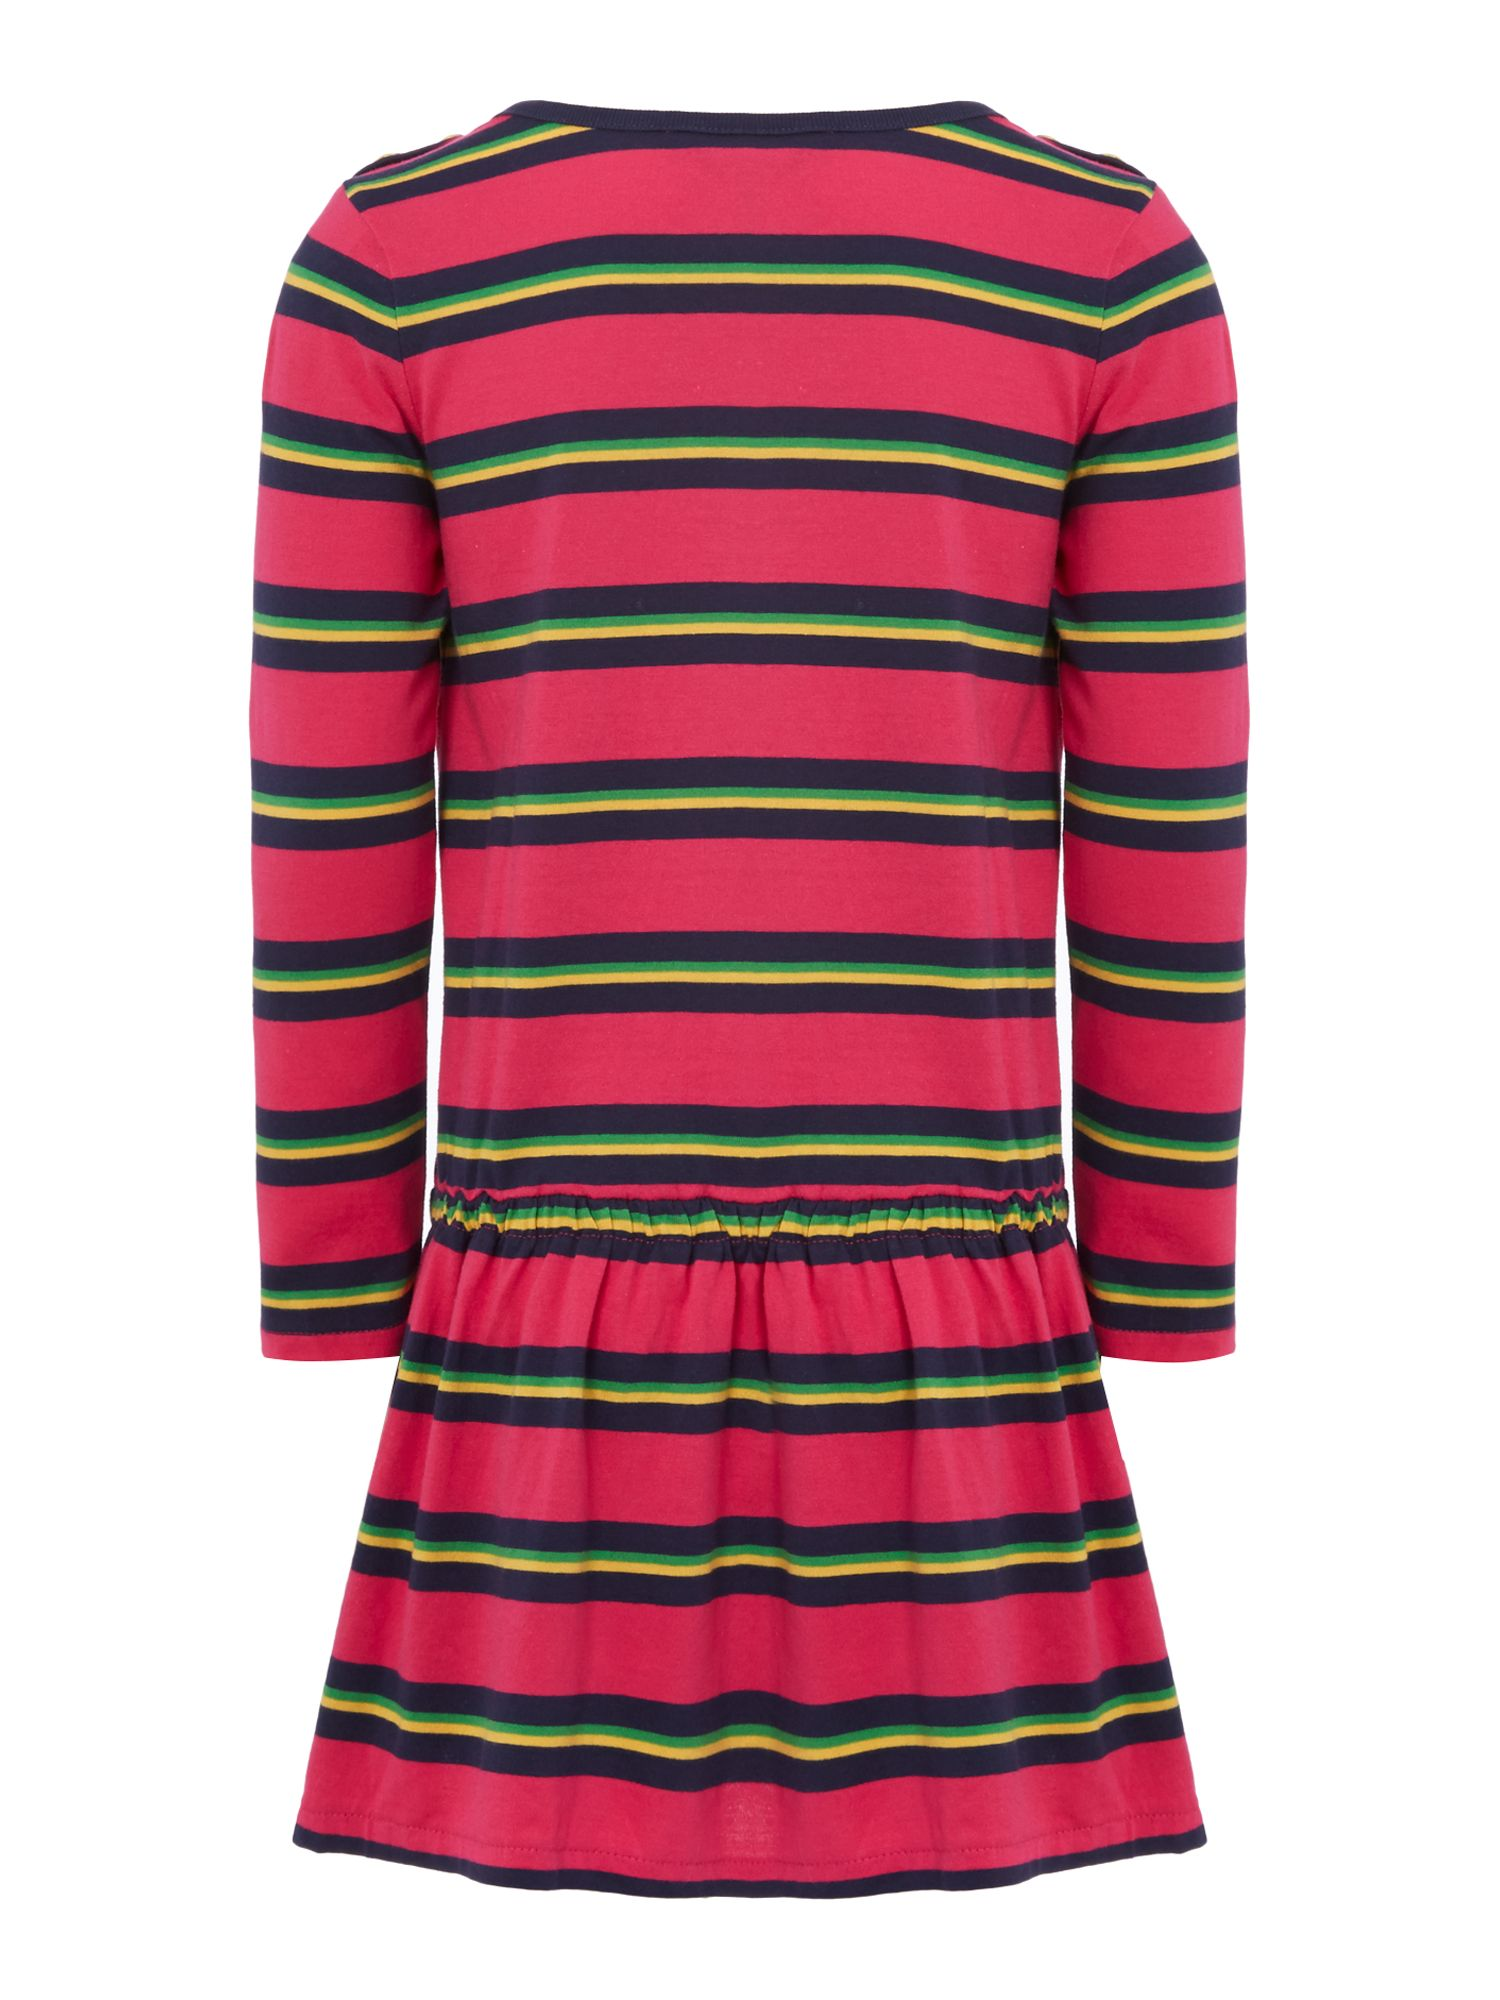 Girls striped drawstring dress